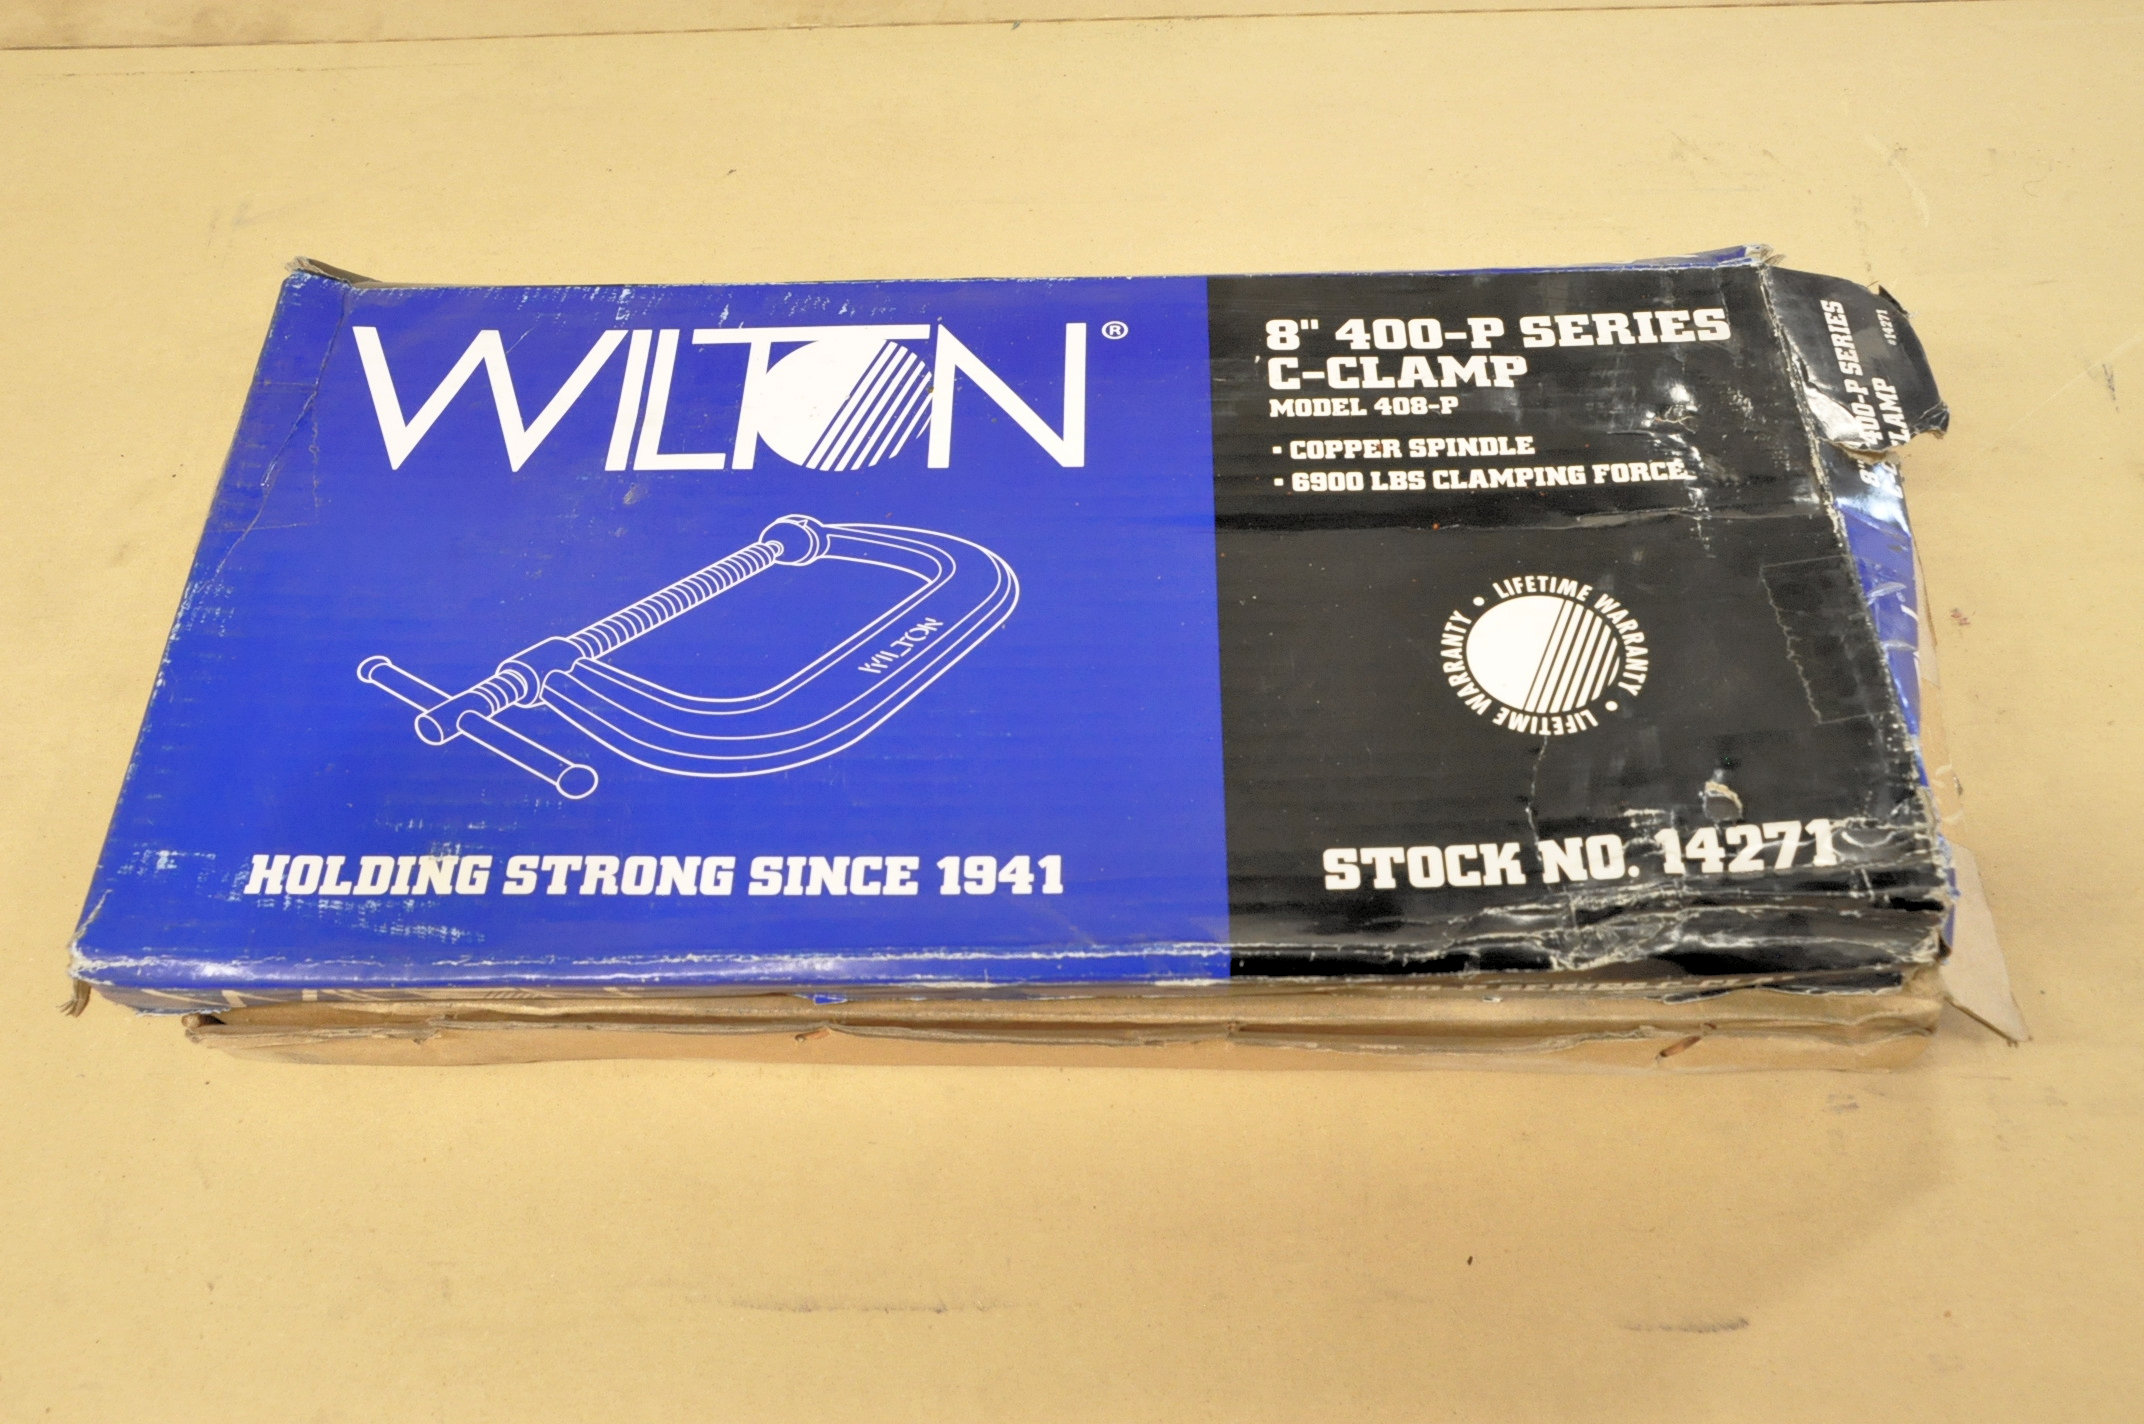 """Lot-(1) Wilton No. 408 and (1) No. 408-P, 8"""" C-Clamps, (Packaged)"""